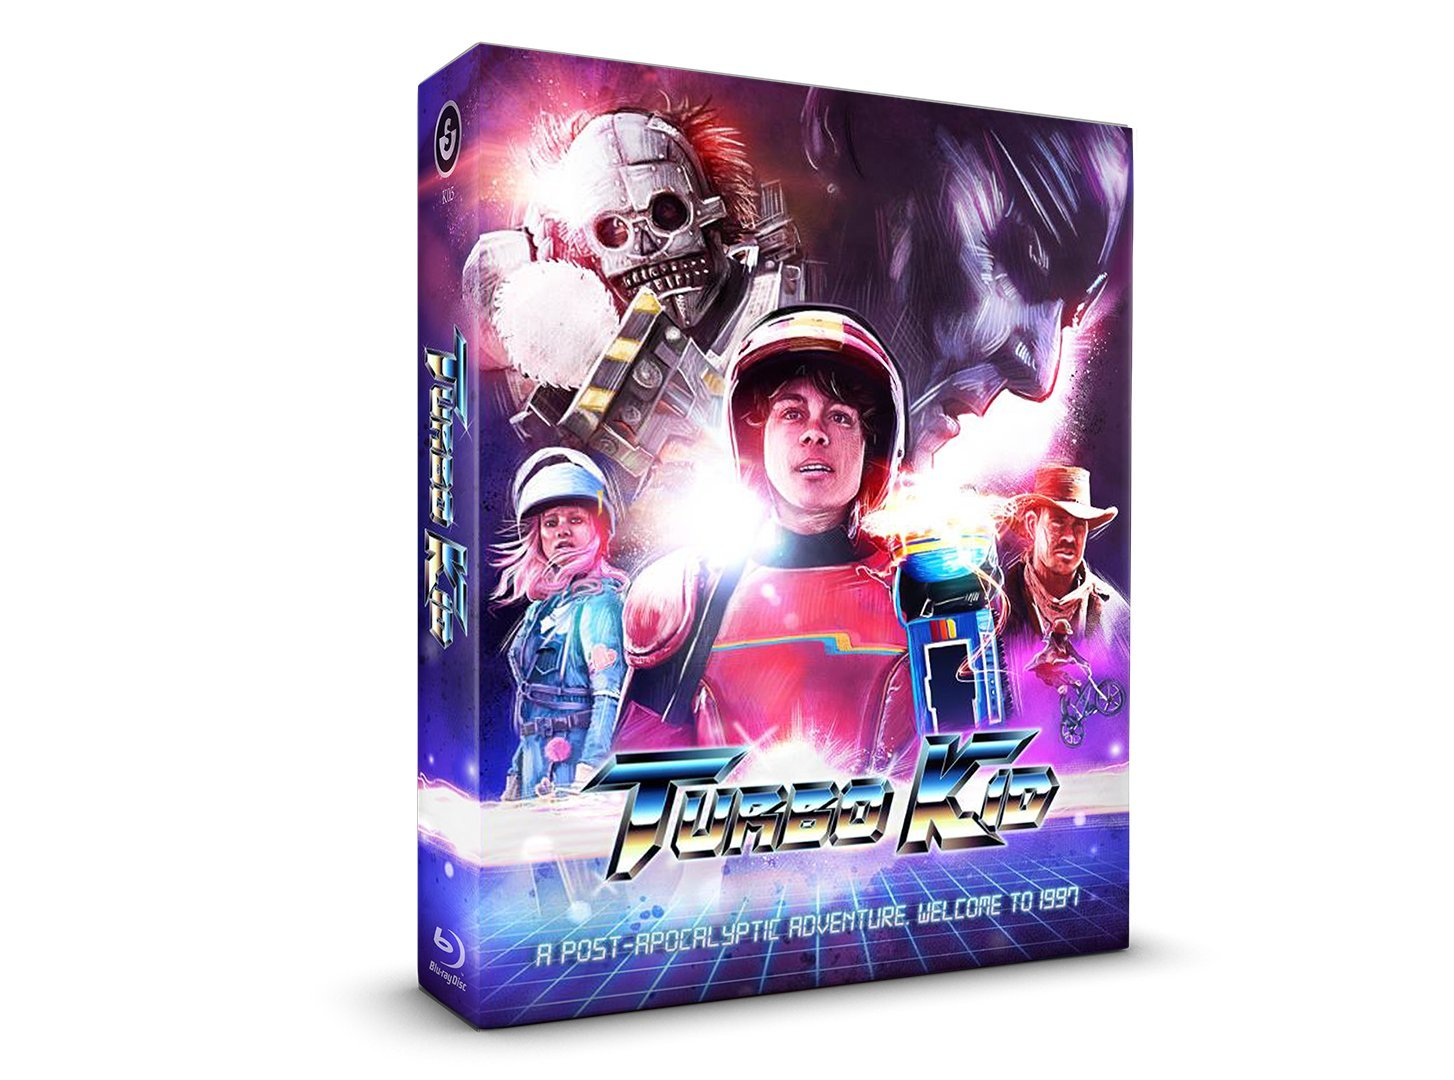 Turbo Kid Full Slip Limited Edition Alemania Blu-ray: Amazon.es: Munro Chambers, Laurence Leboeuf, Michael Ironside, Francois Simard, Anouk Whissell, ...